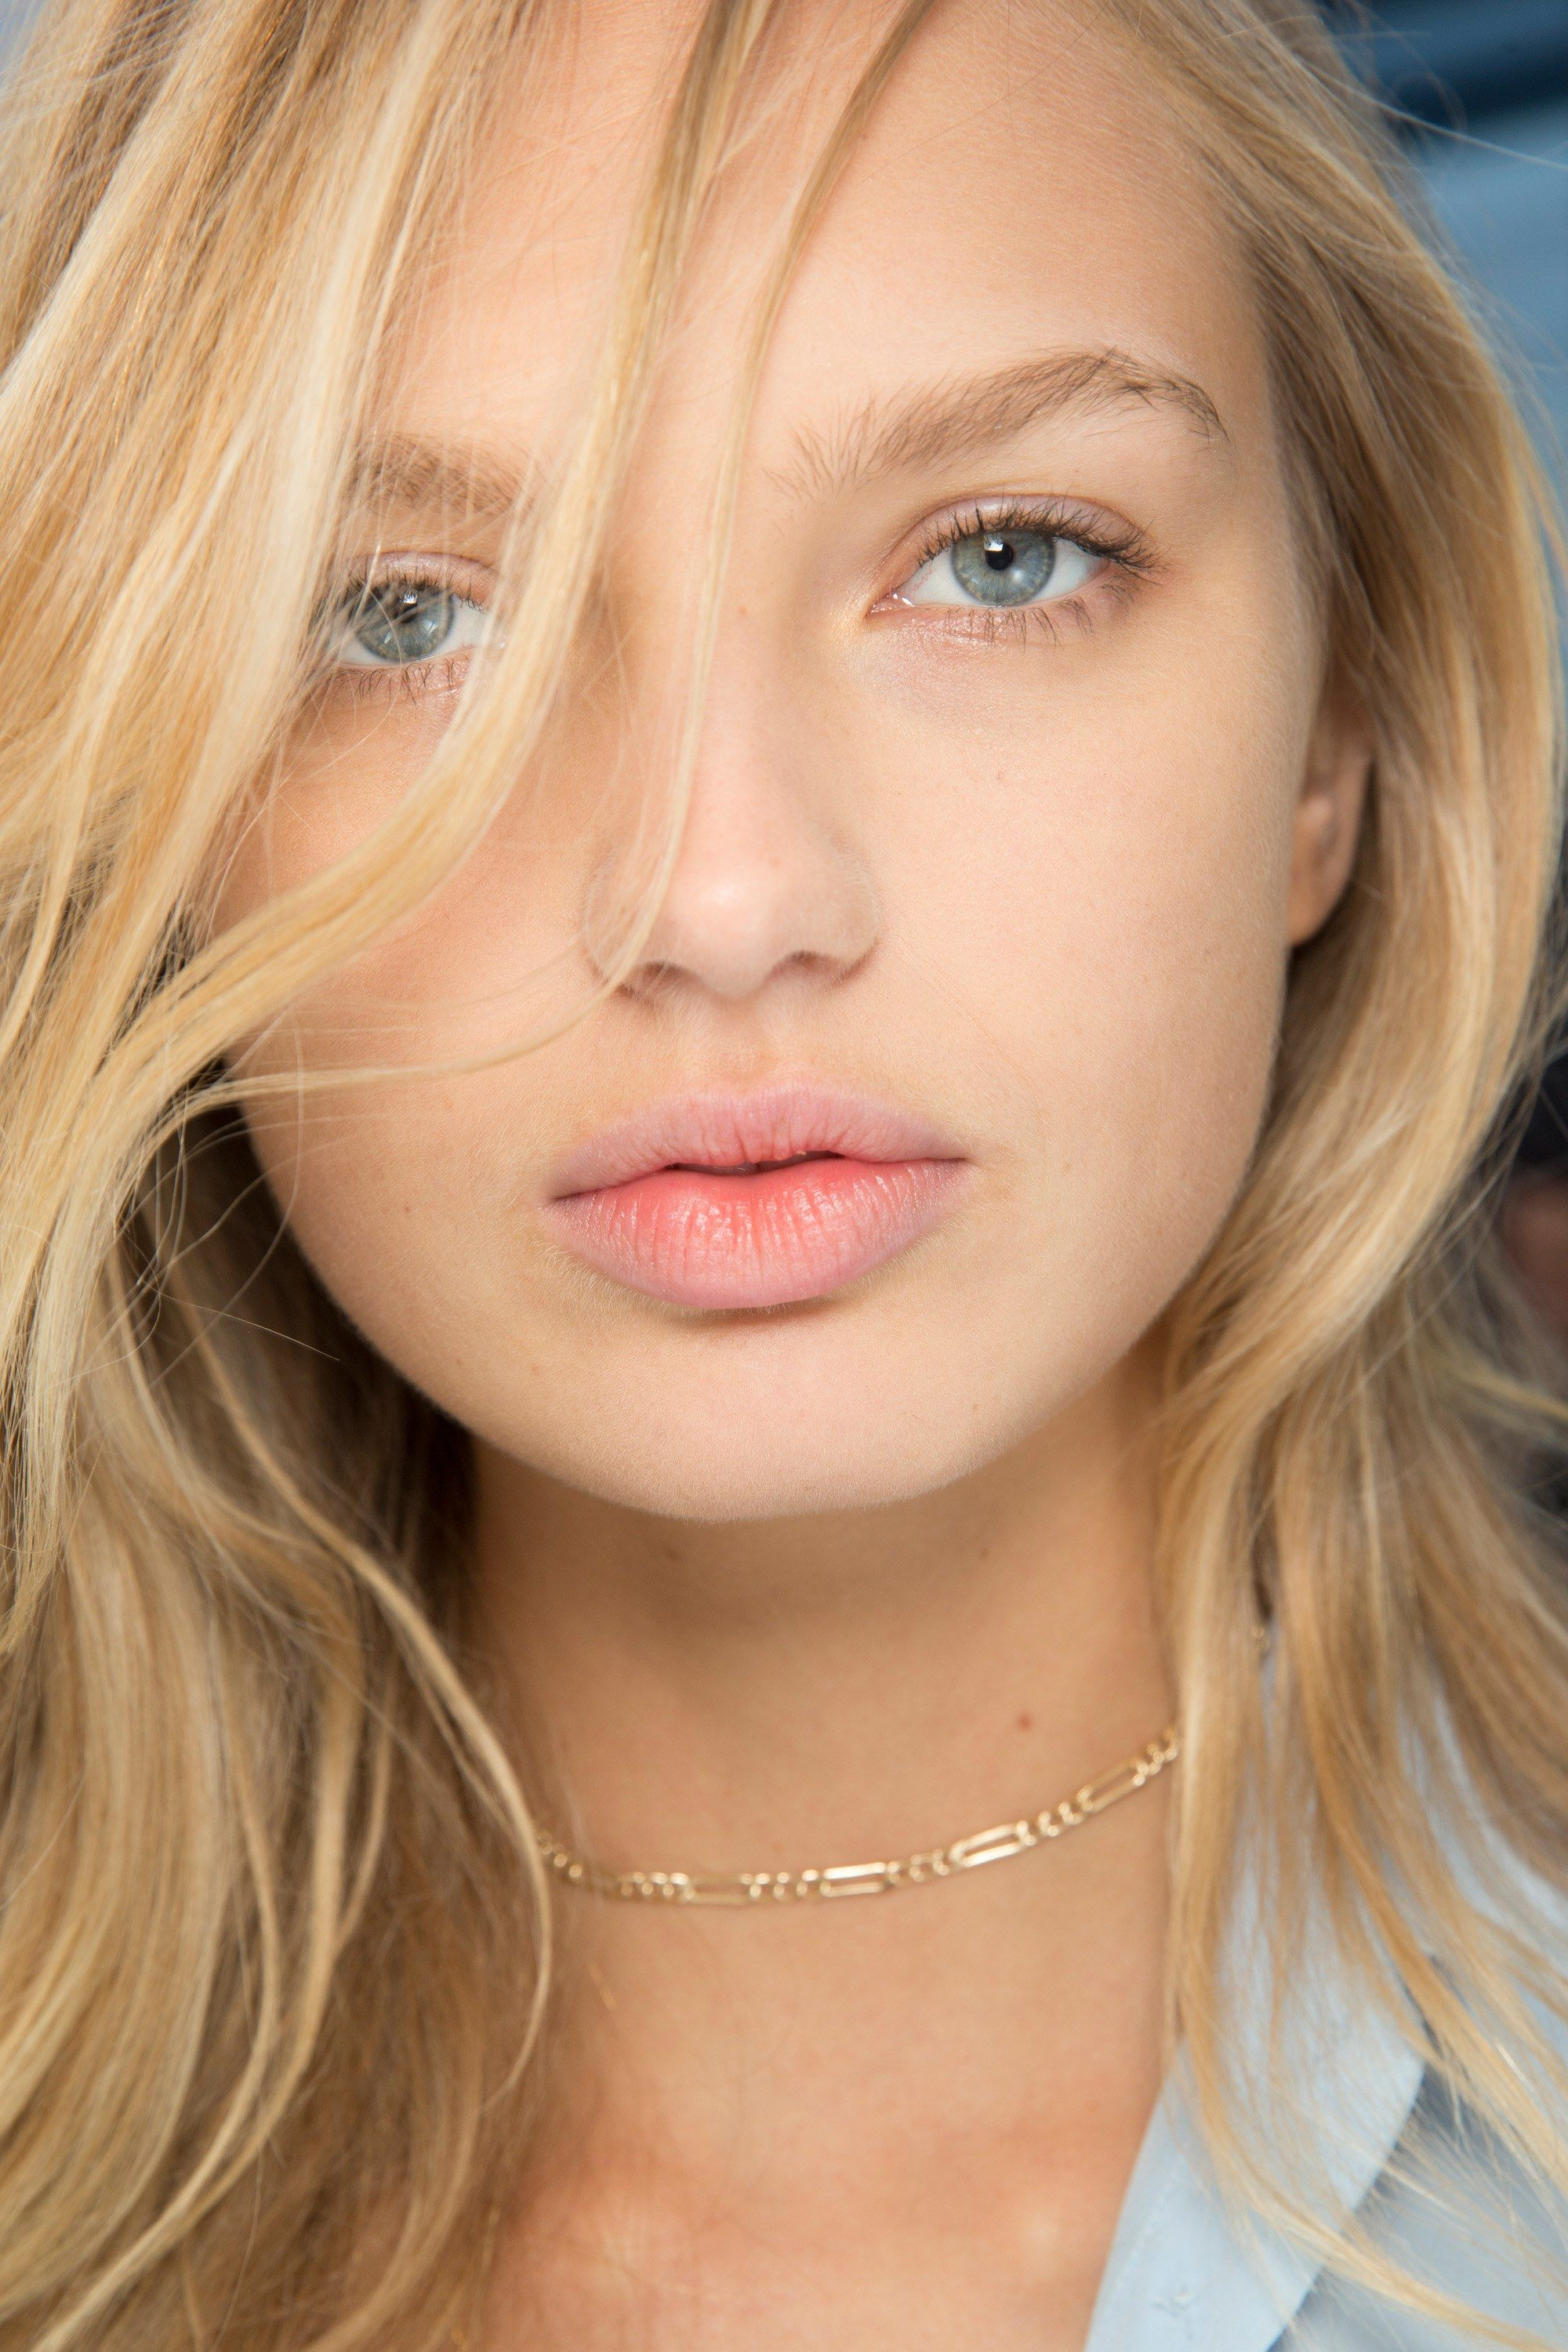 Michael Kors Collection Spring 2017 Ready-to-Wear Beauty Photos - Vogue